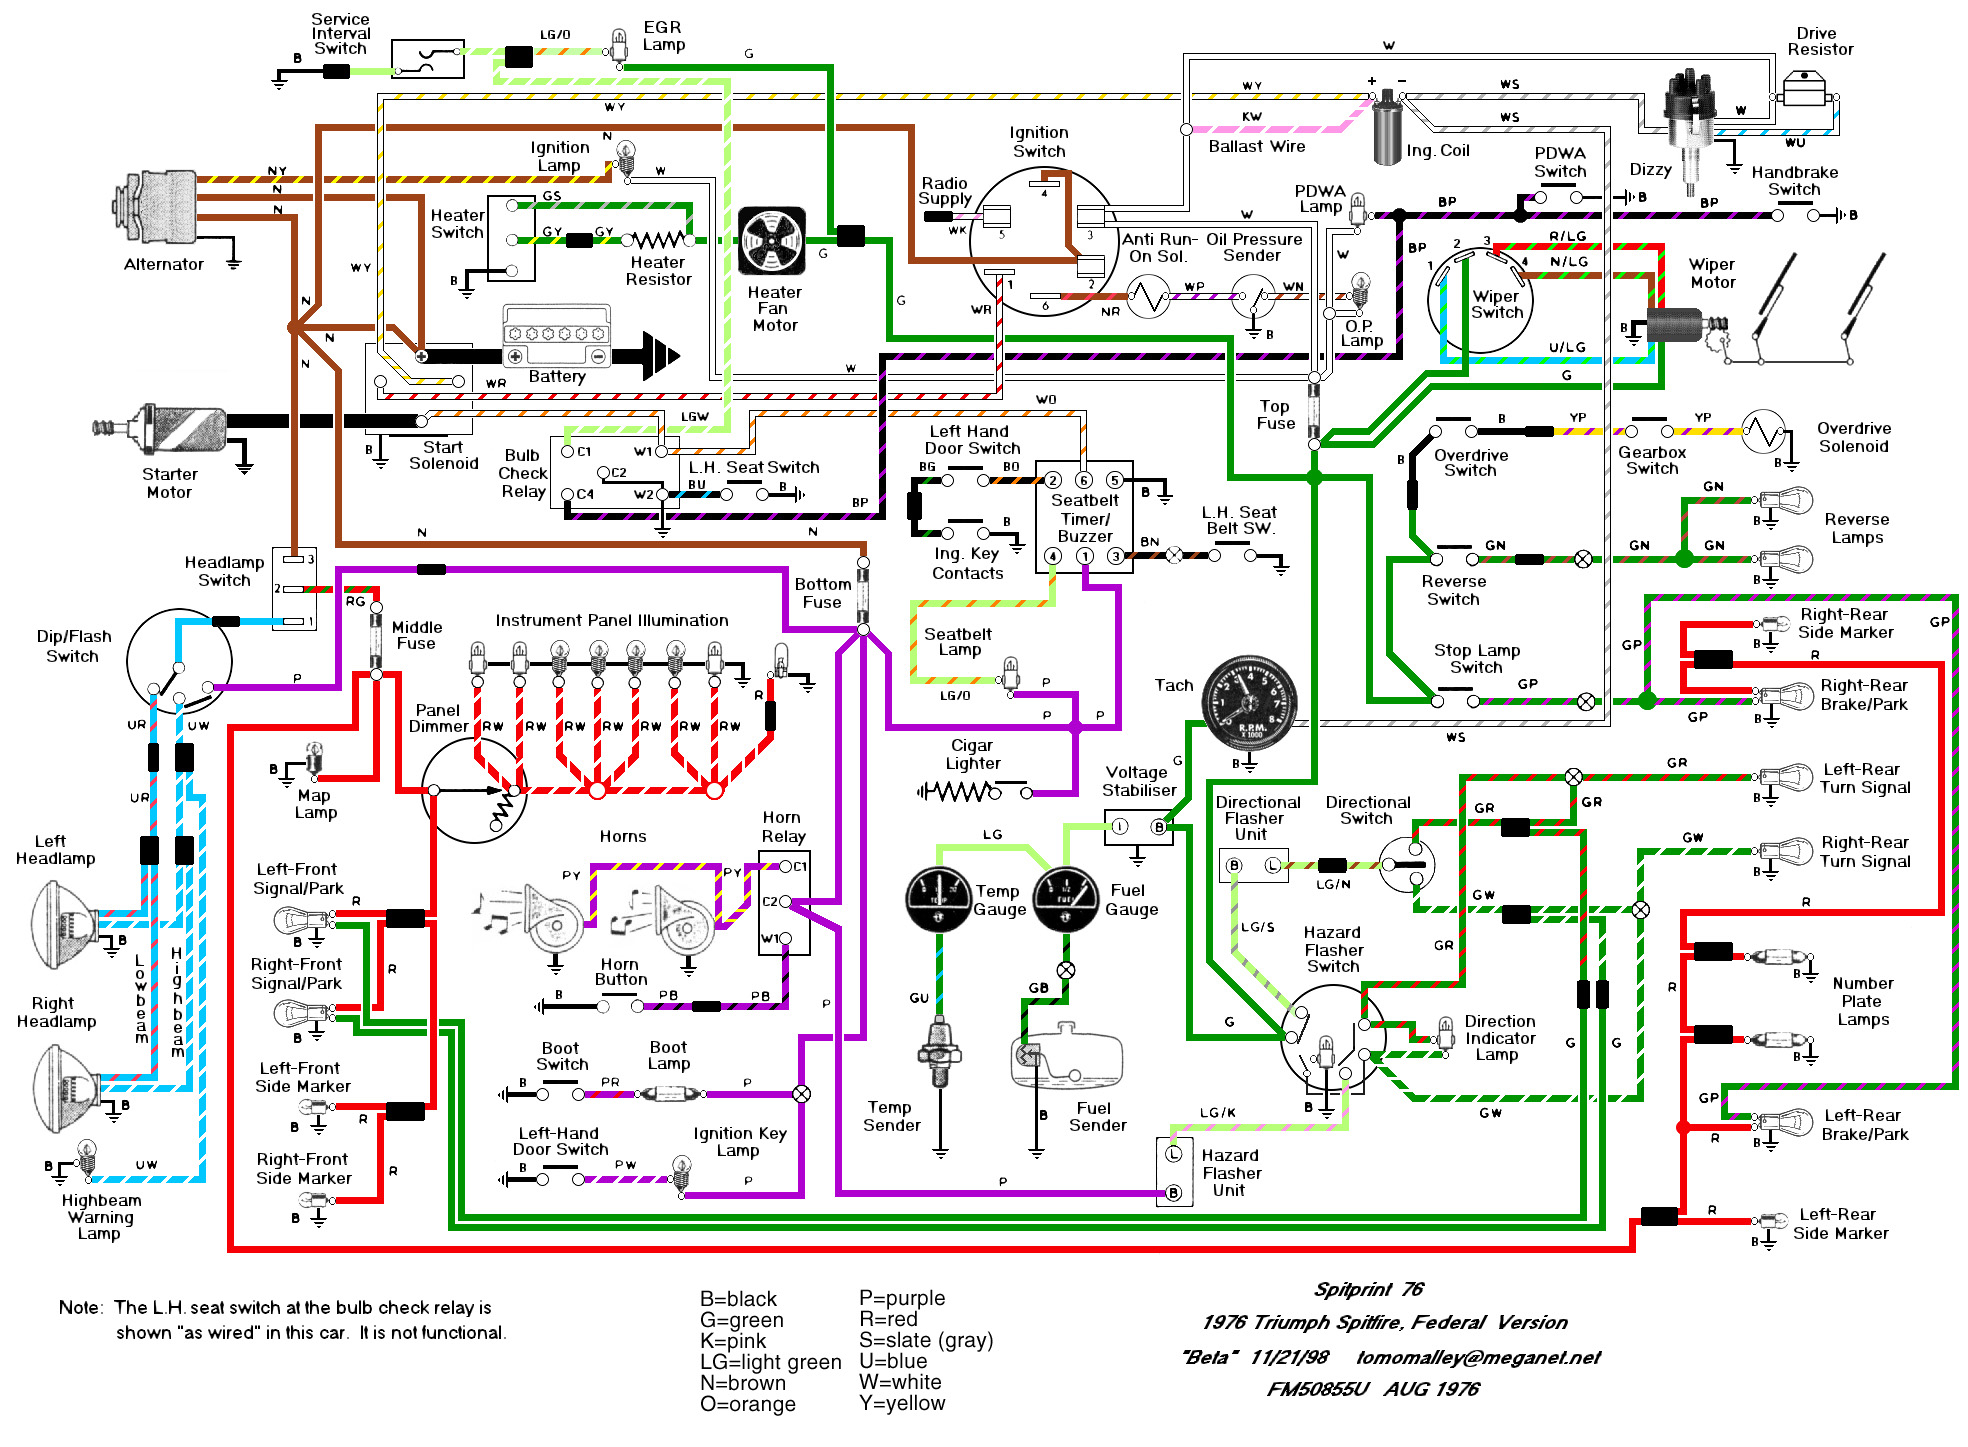 Simple Automotive Wiring Diagram Switch Detailed Schematics Car Diagrams Universal Easy Auto